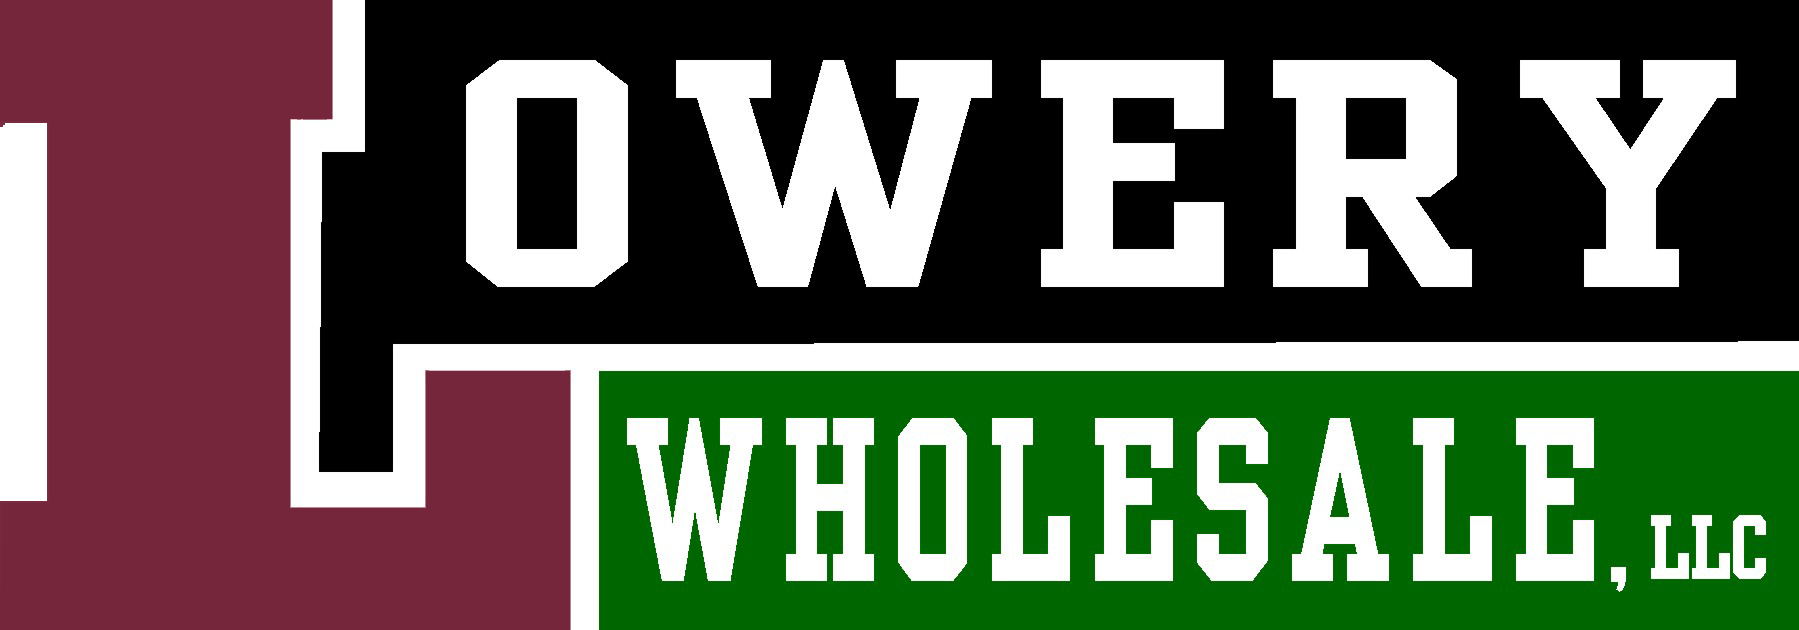 A maroon, green and black logo for Lowery Wholesale, LLC.